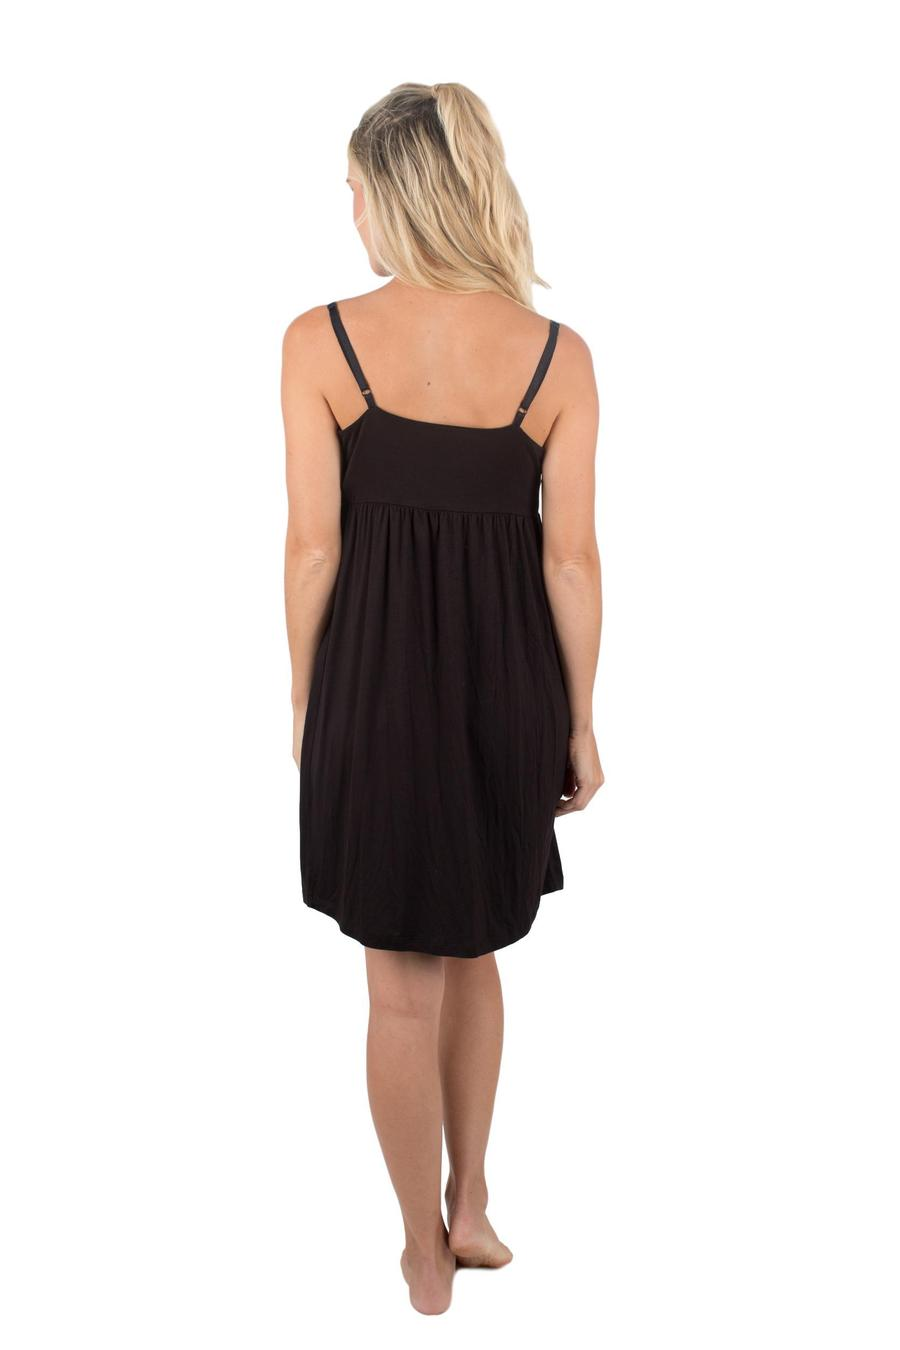 Maternity Nursing Chemise Back